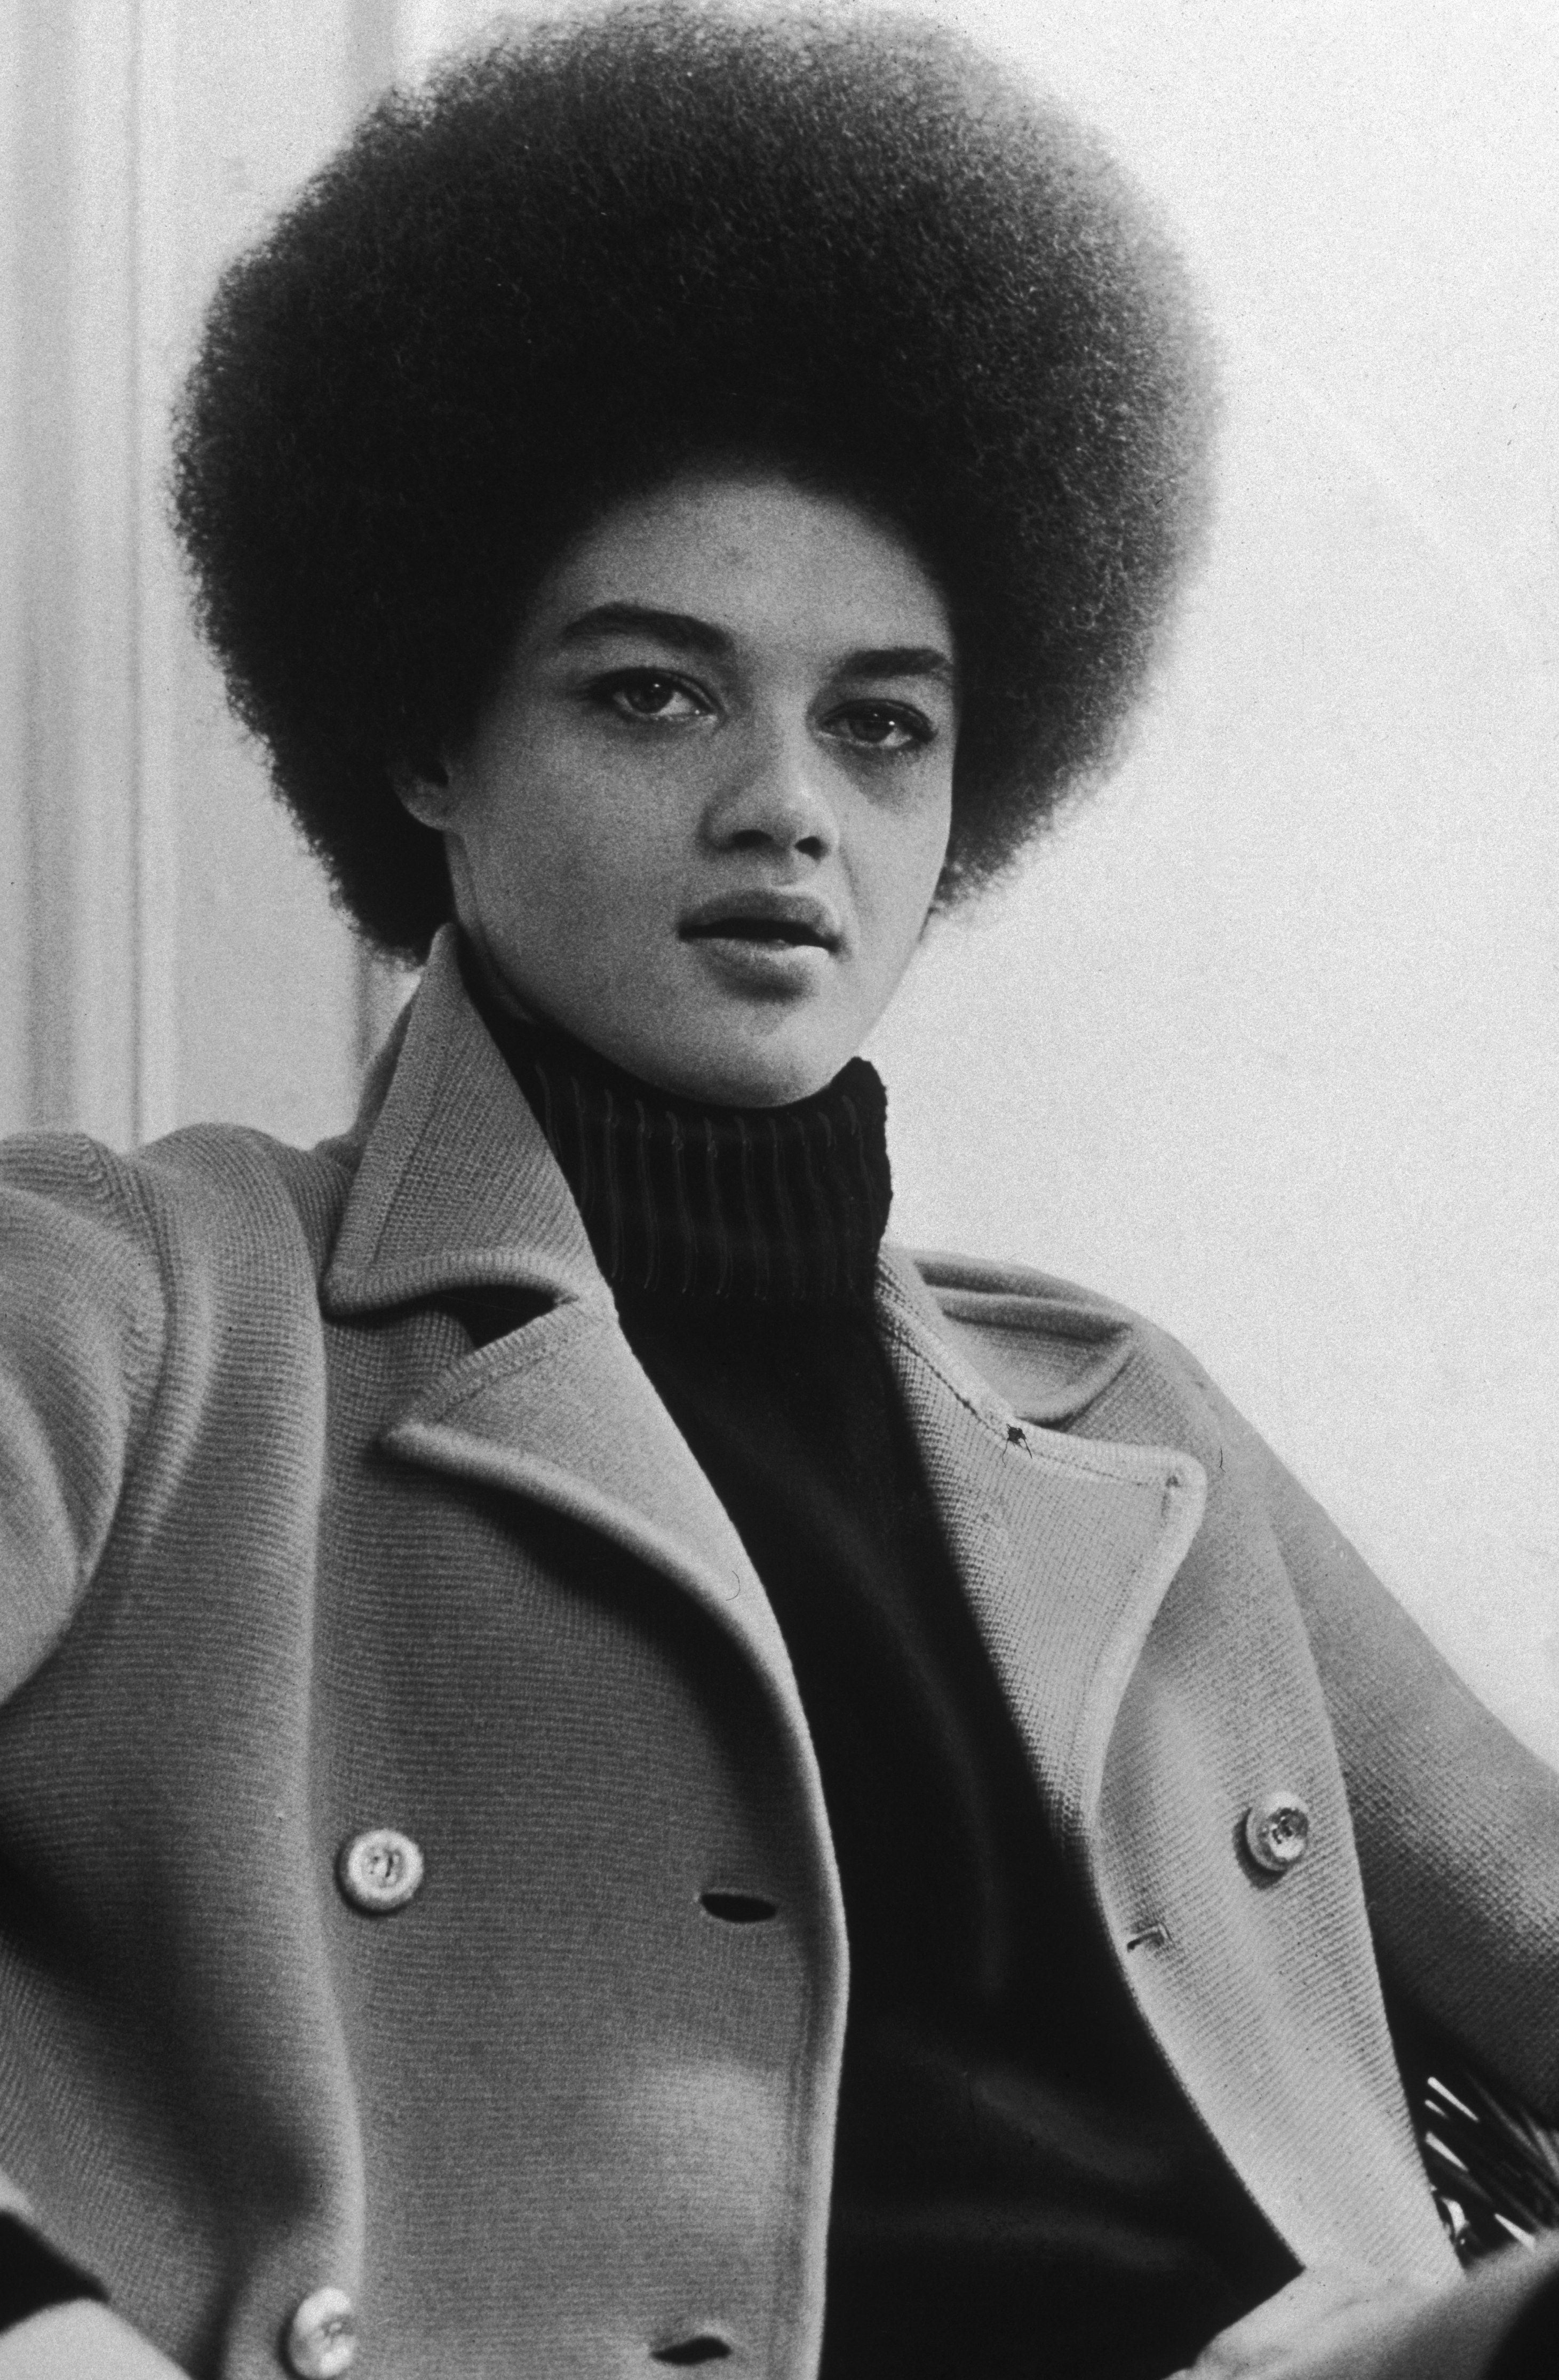 How Clothes Helped Female Leaders Convey The Struggle For Civil Rights Black Panthers Movement Black Panther Party Black Panther